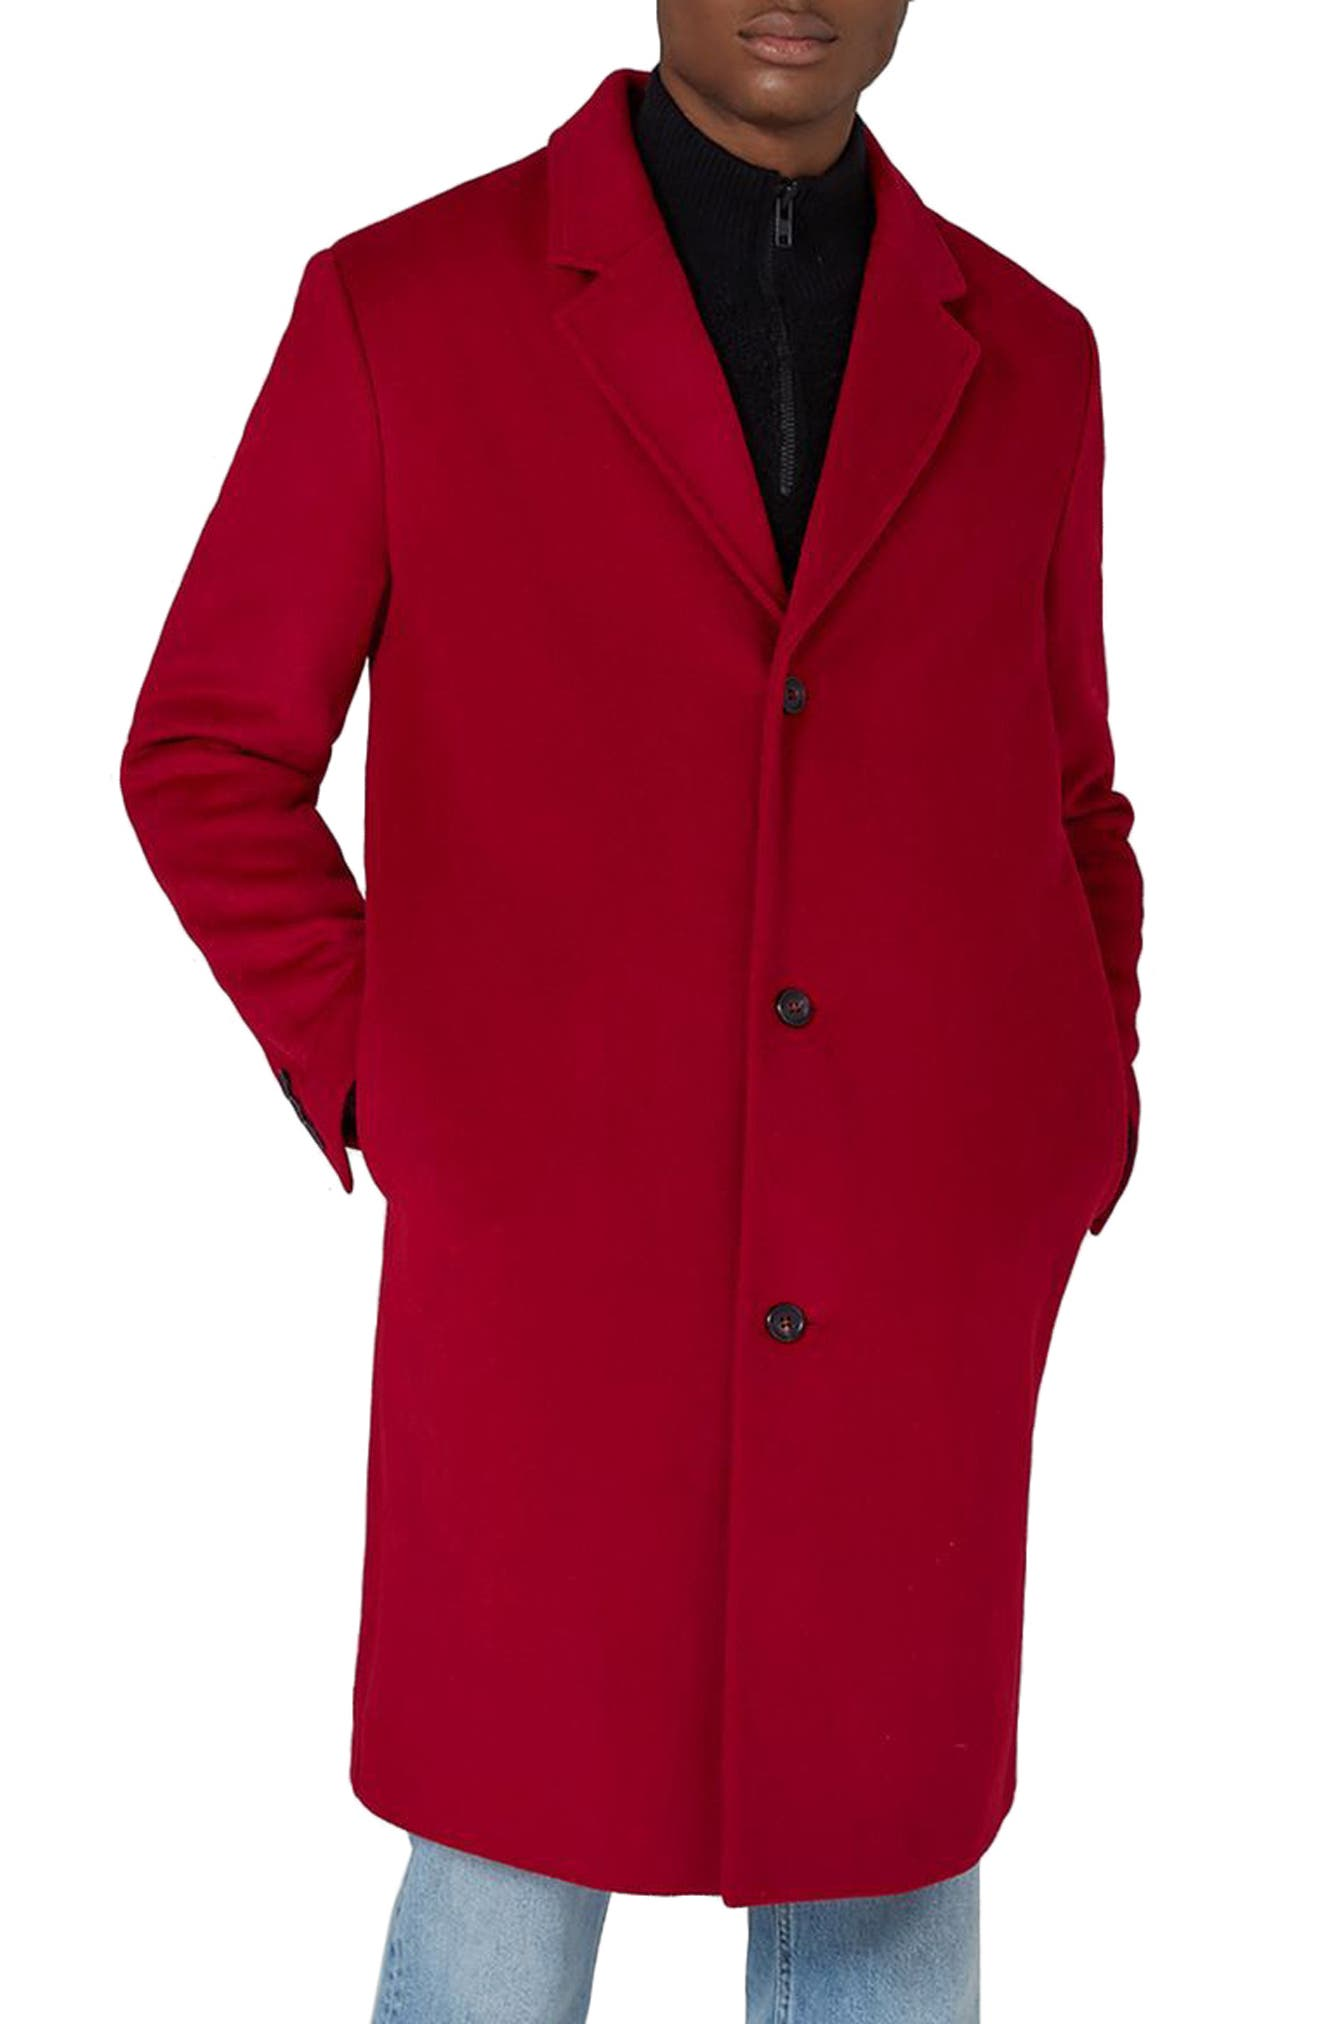 Oversized Single Breasted Coat,                             Main thumbnail 1, color,                             600